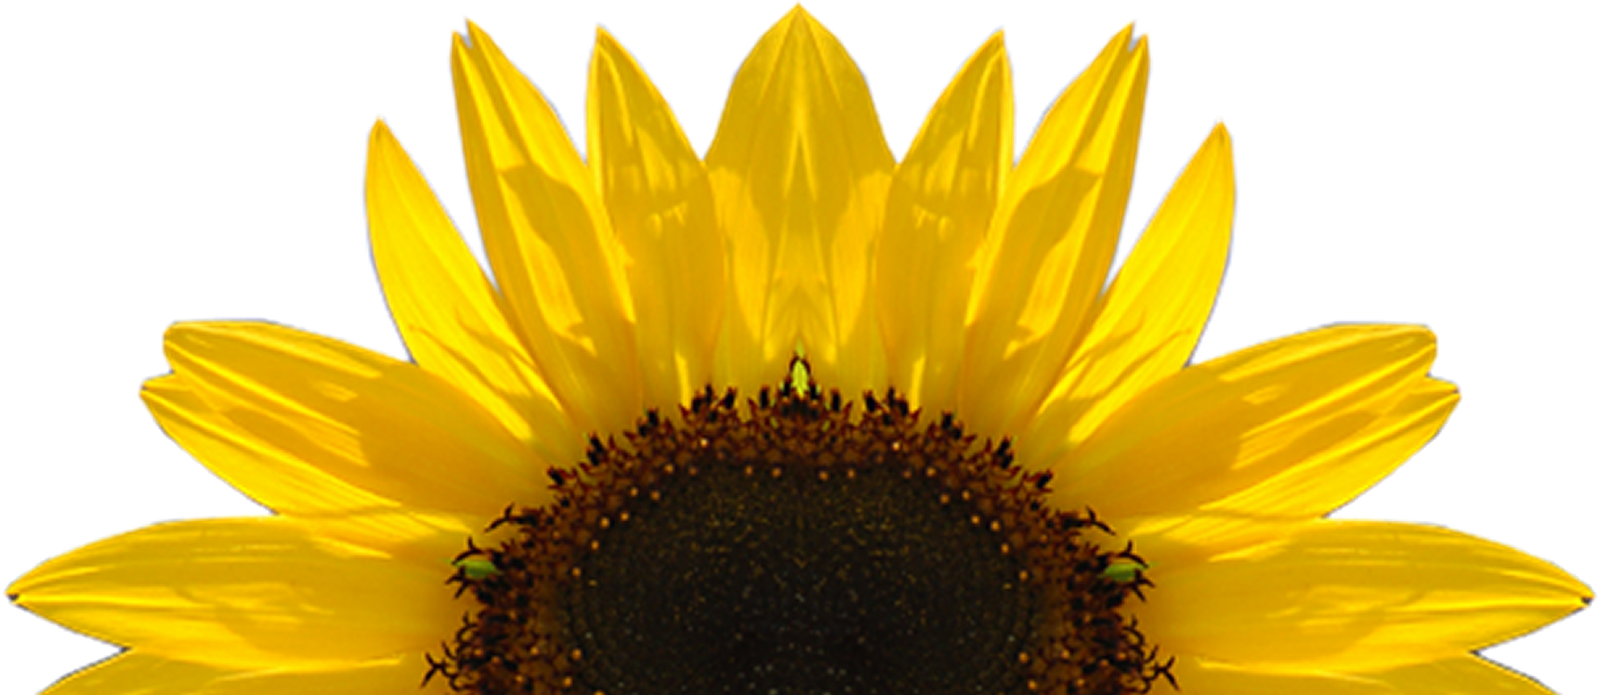 Sunflowers PNG - 6587